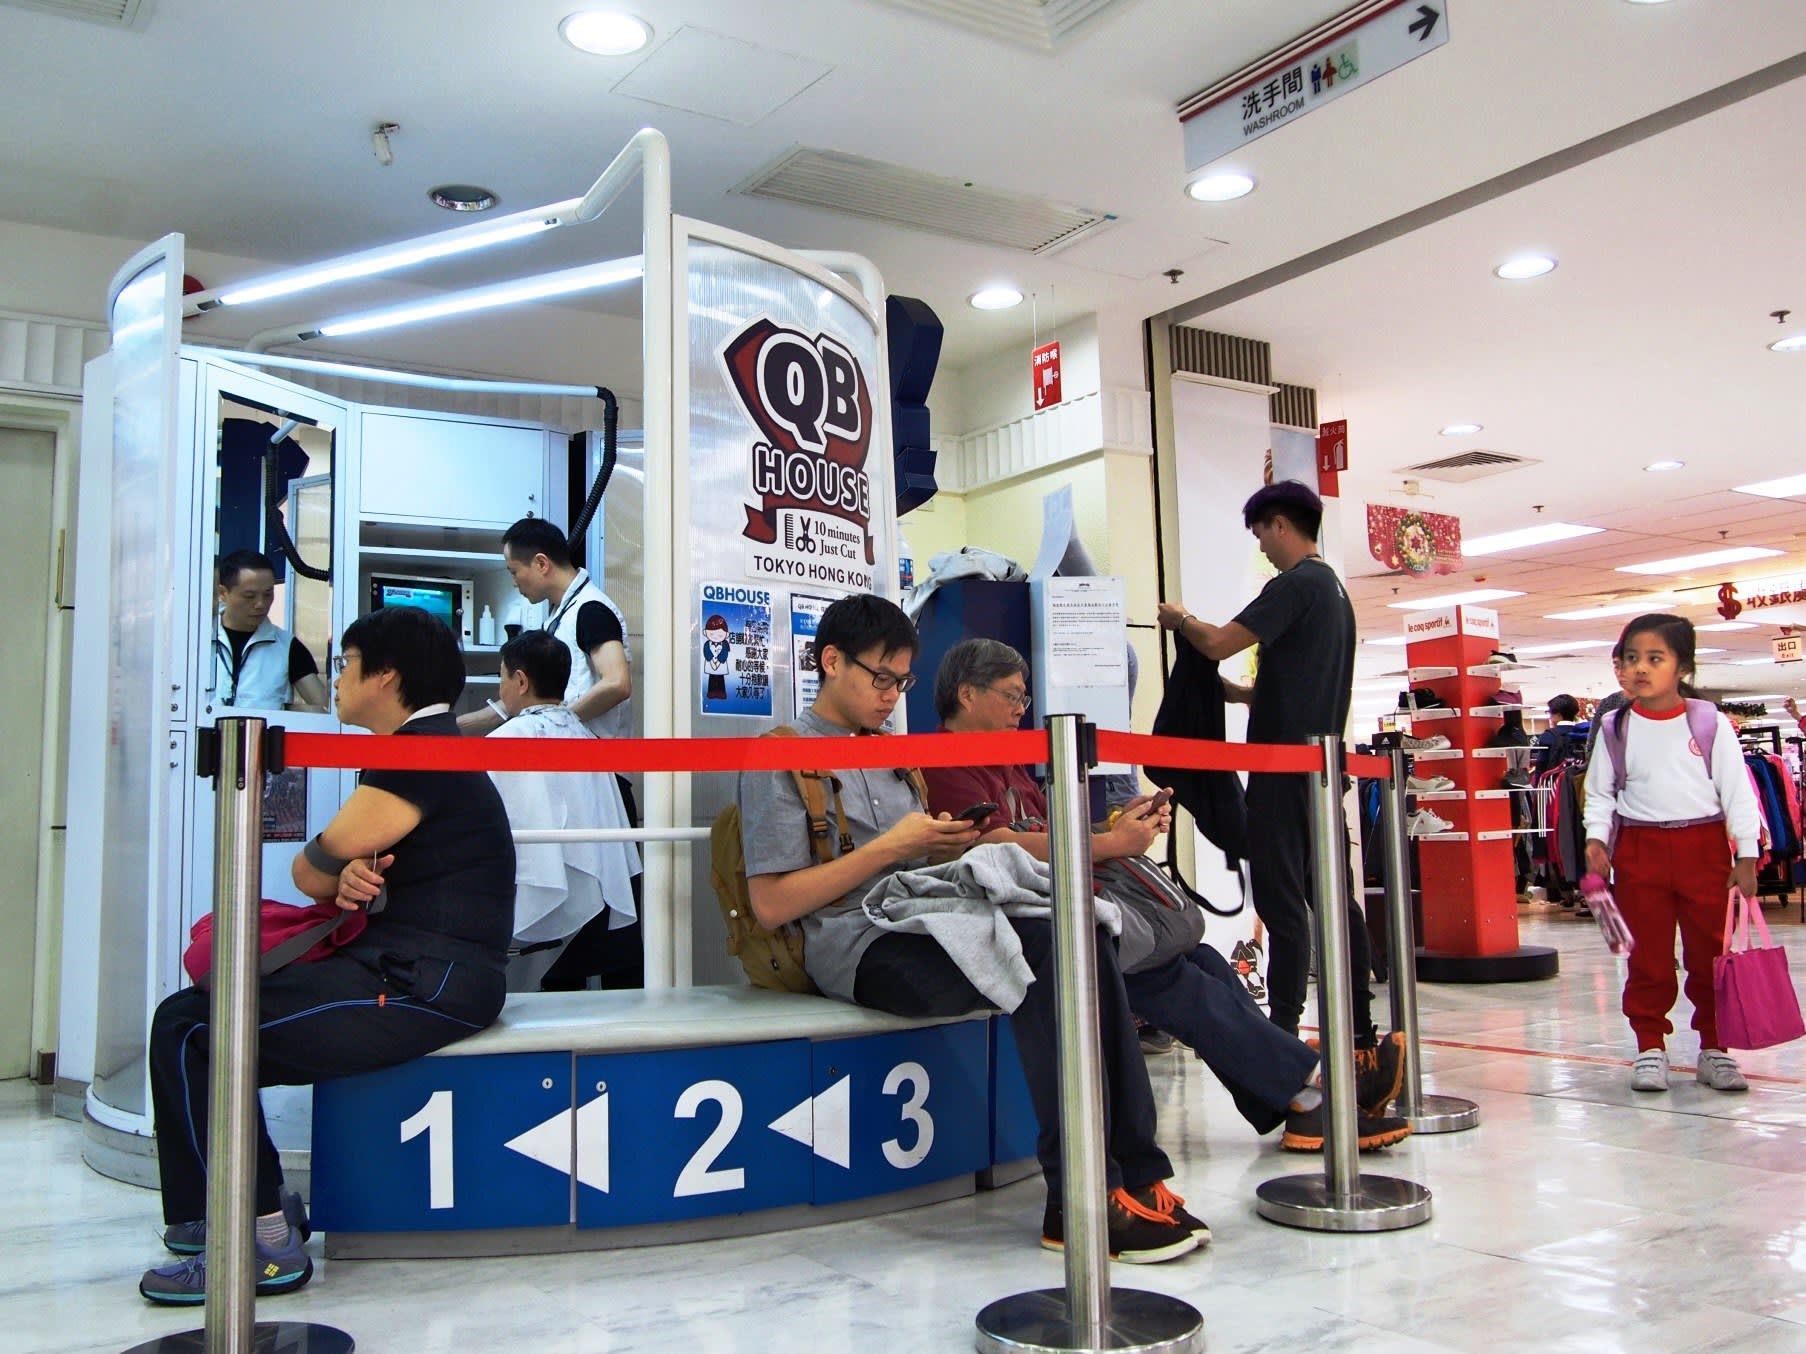 Barbers, shoe repairers, dry cleaners gain ground in Asia - Nikkei